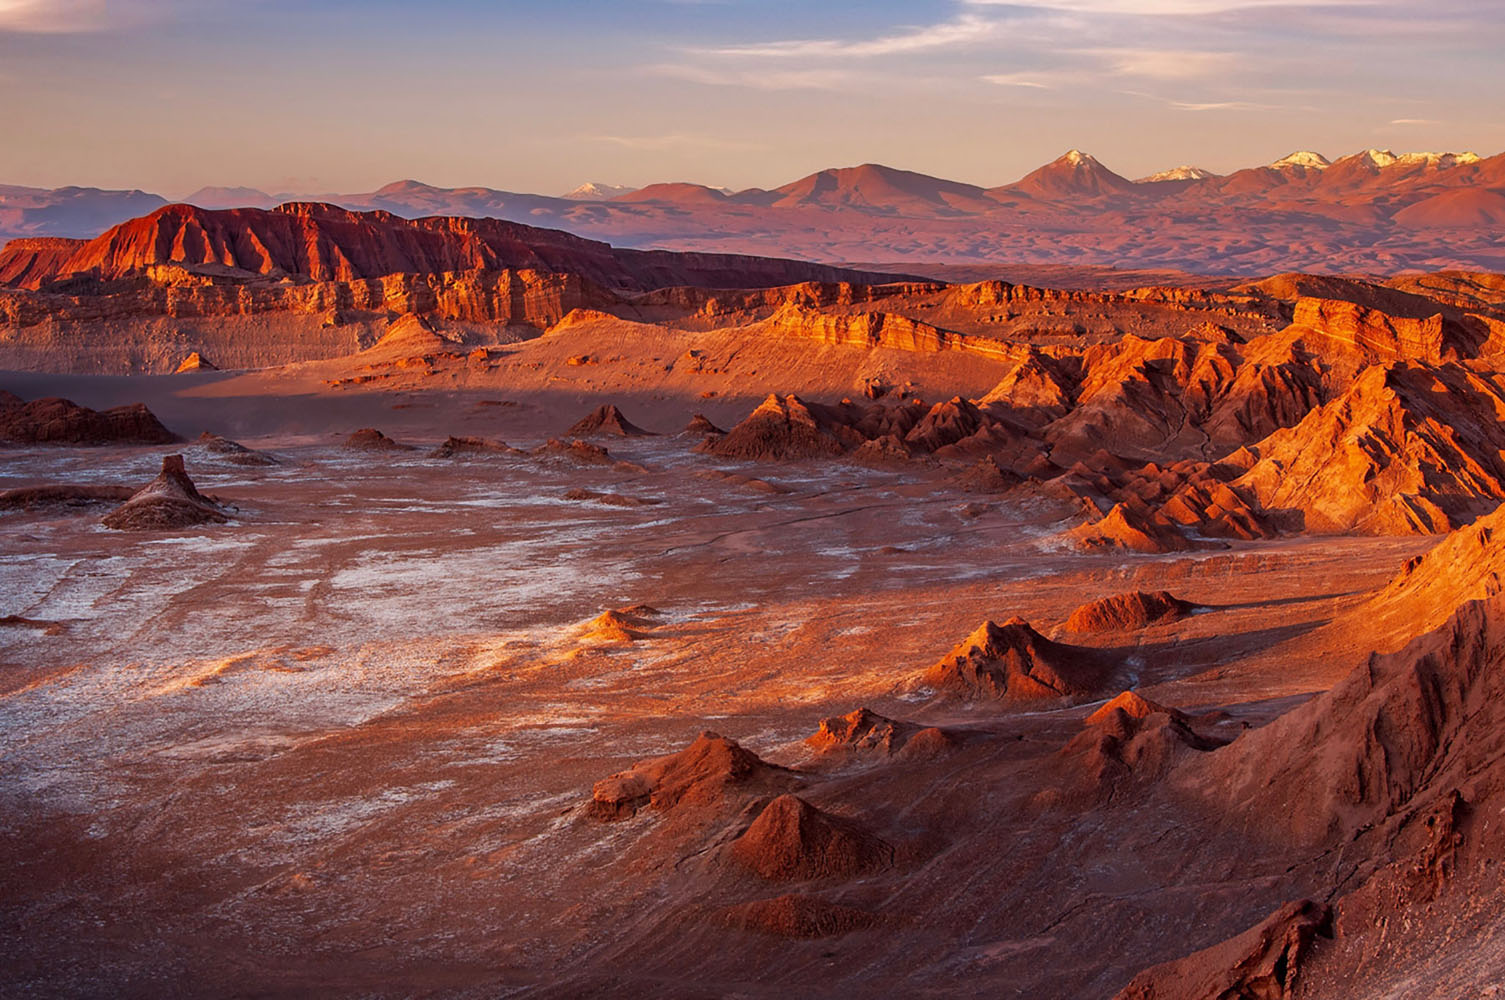 Sunset and strong shadows in the Moon Valley of Atacama desert